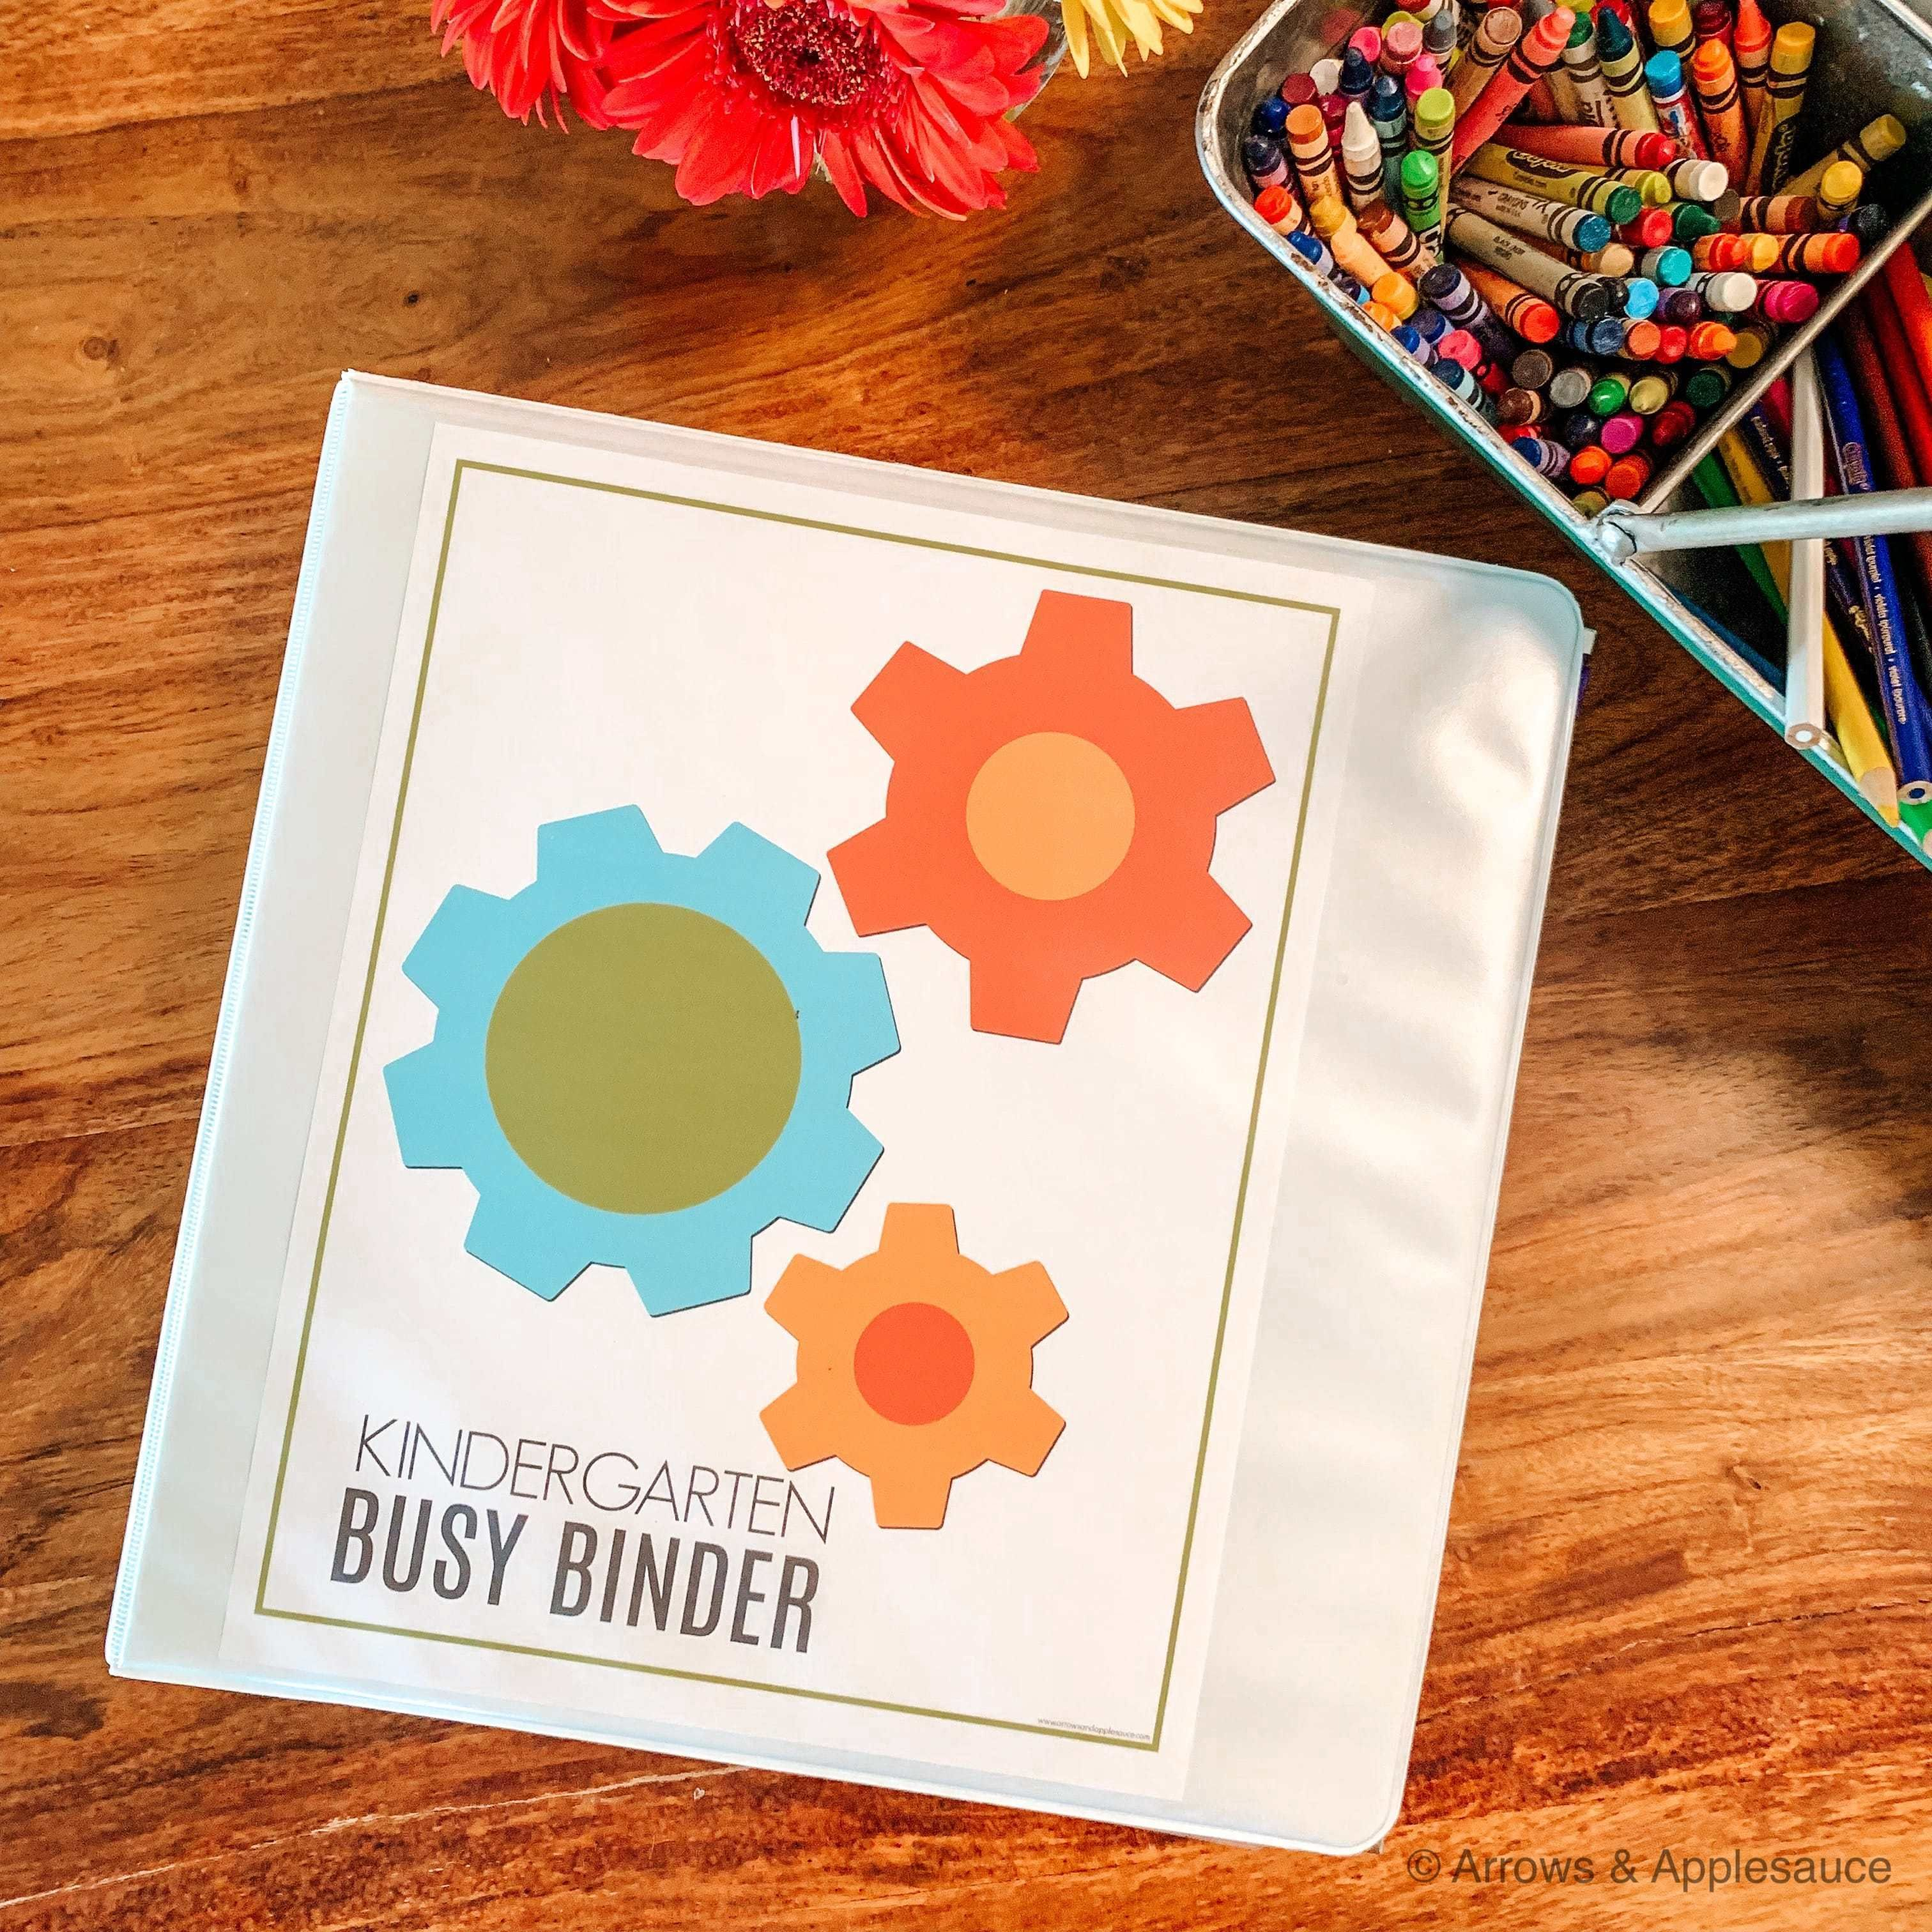 Our Kindergarten Busy Binder